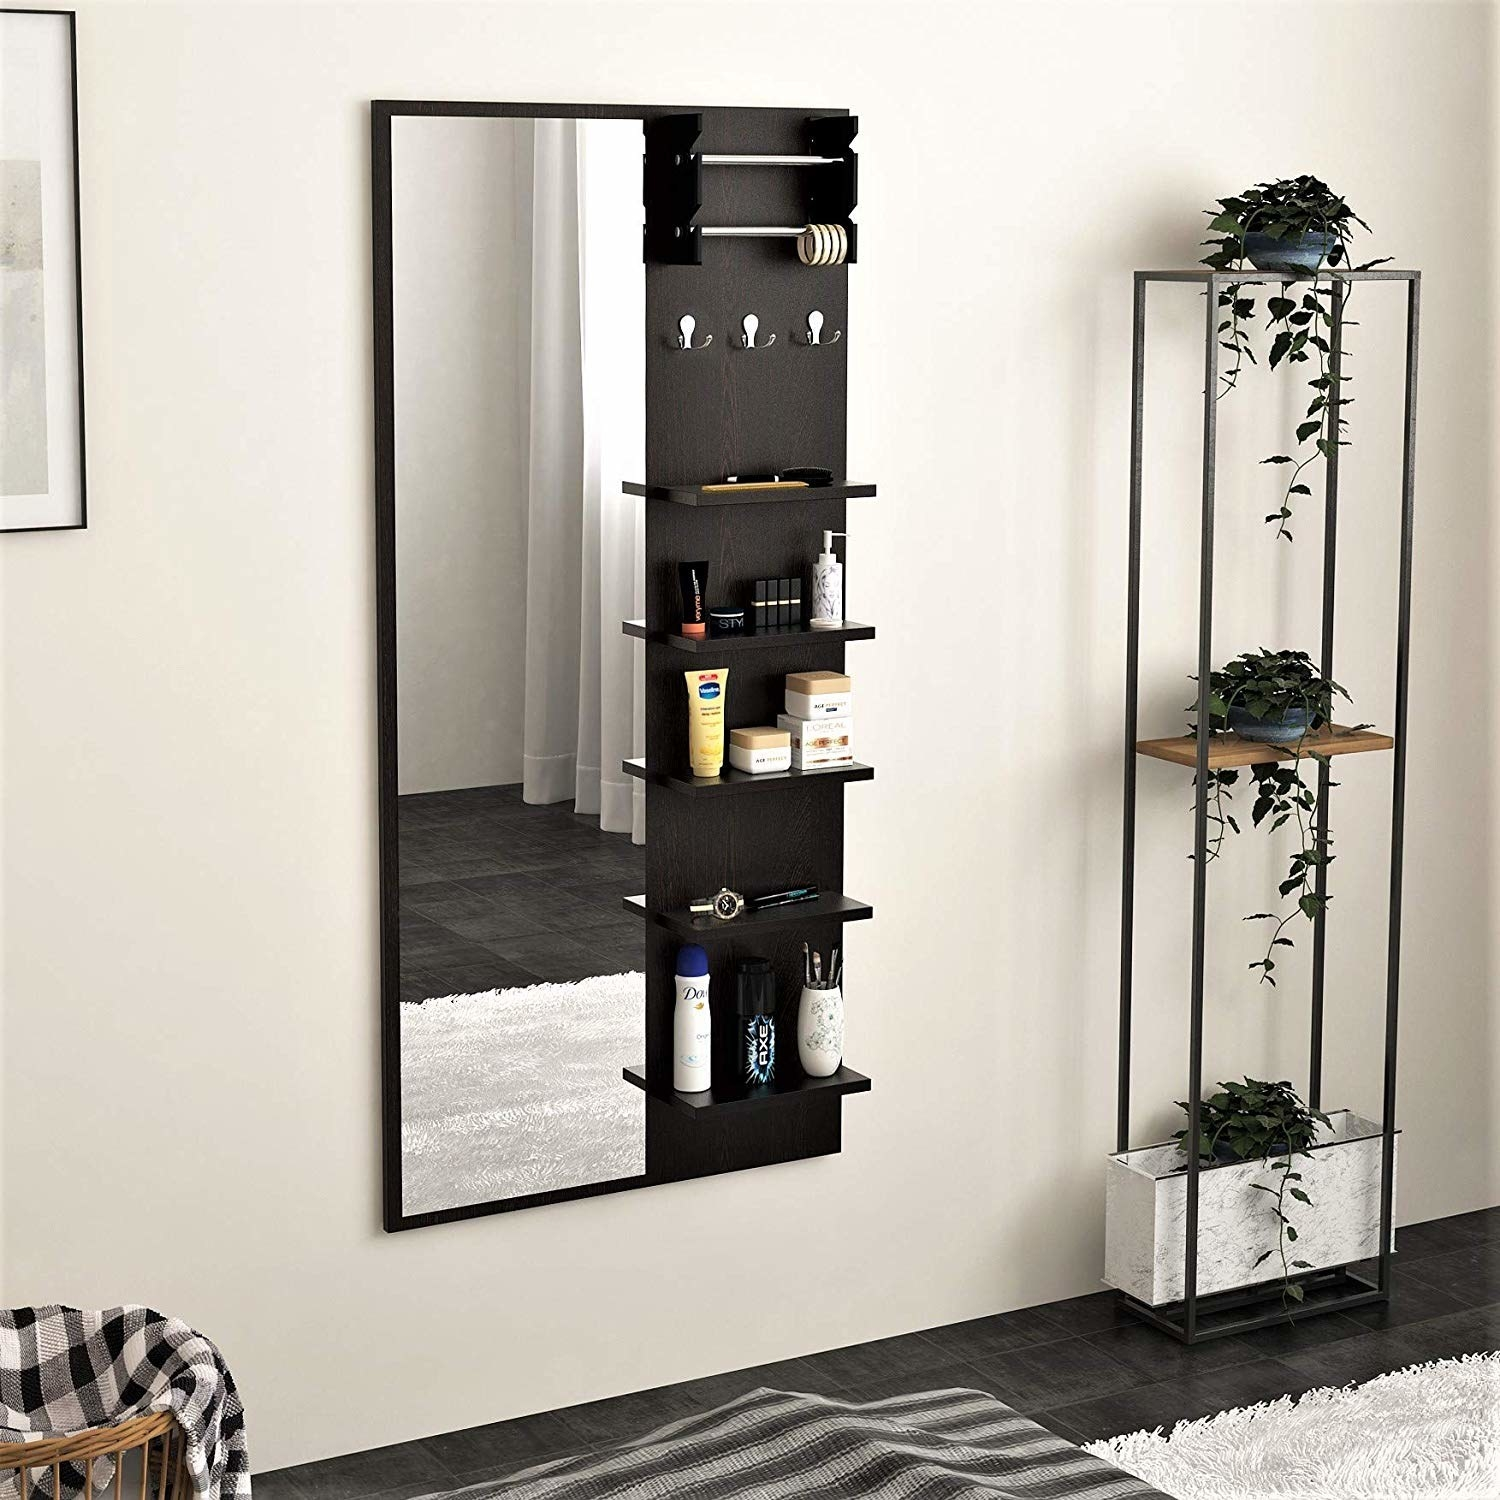 A mirror with shelves attached to the side